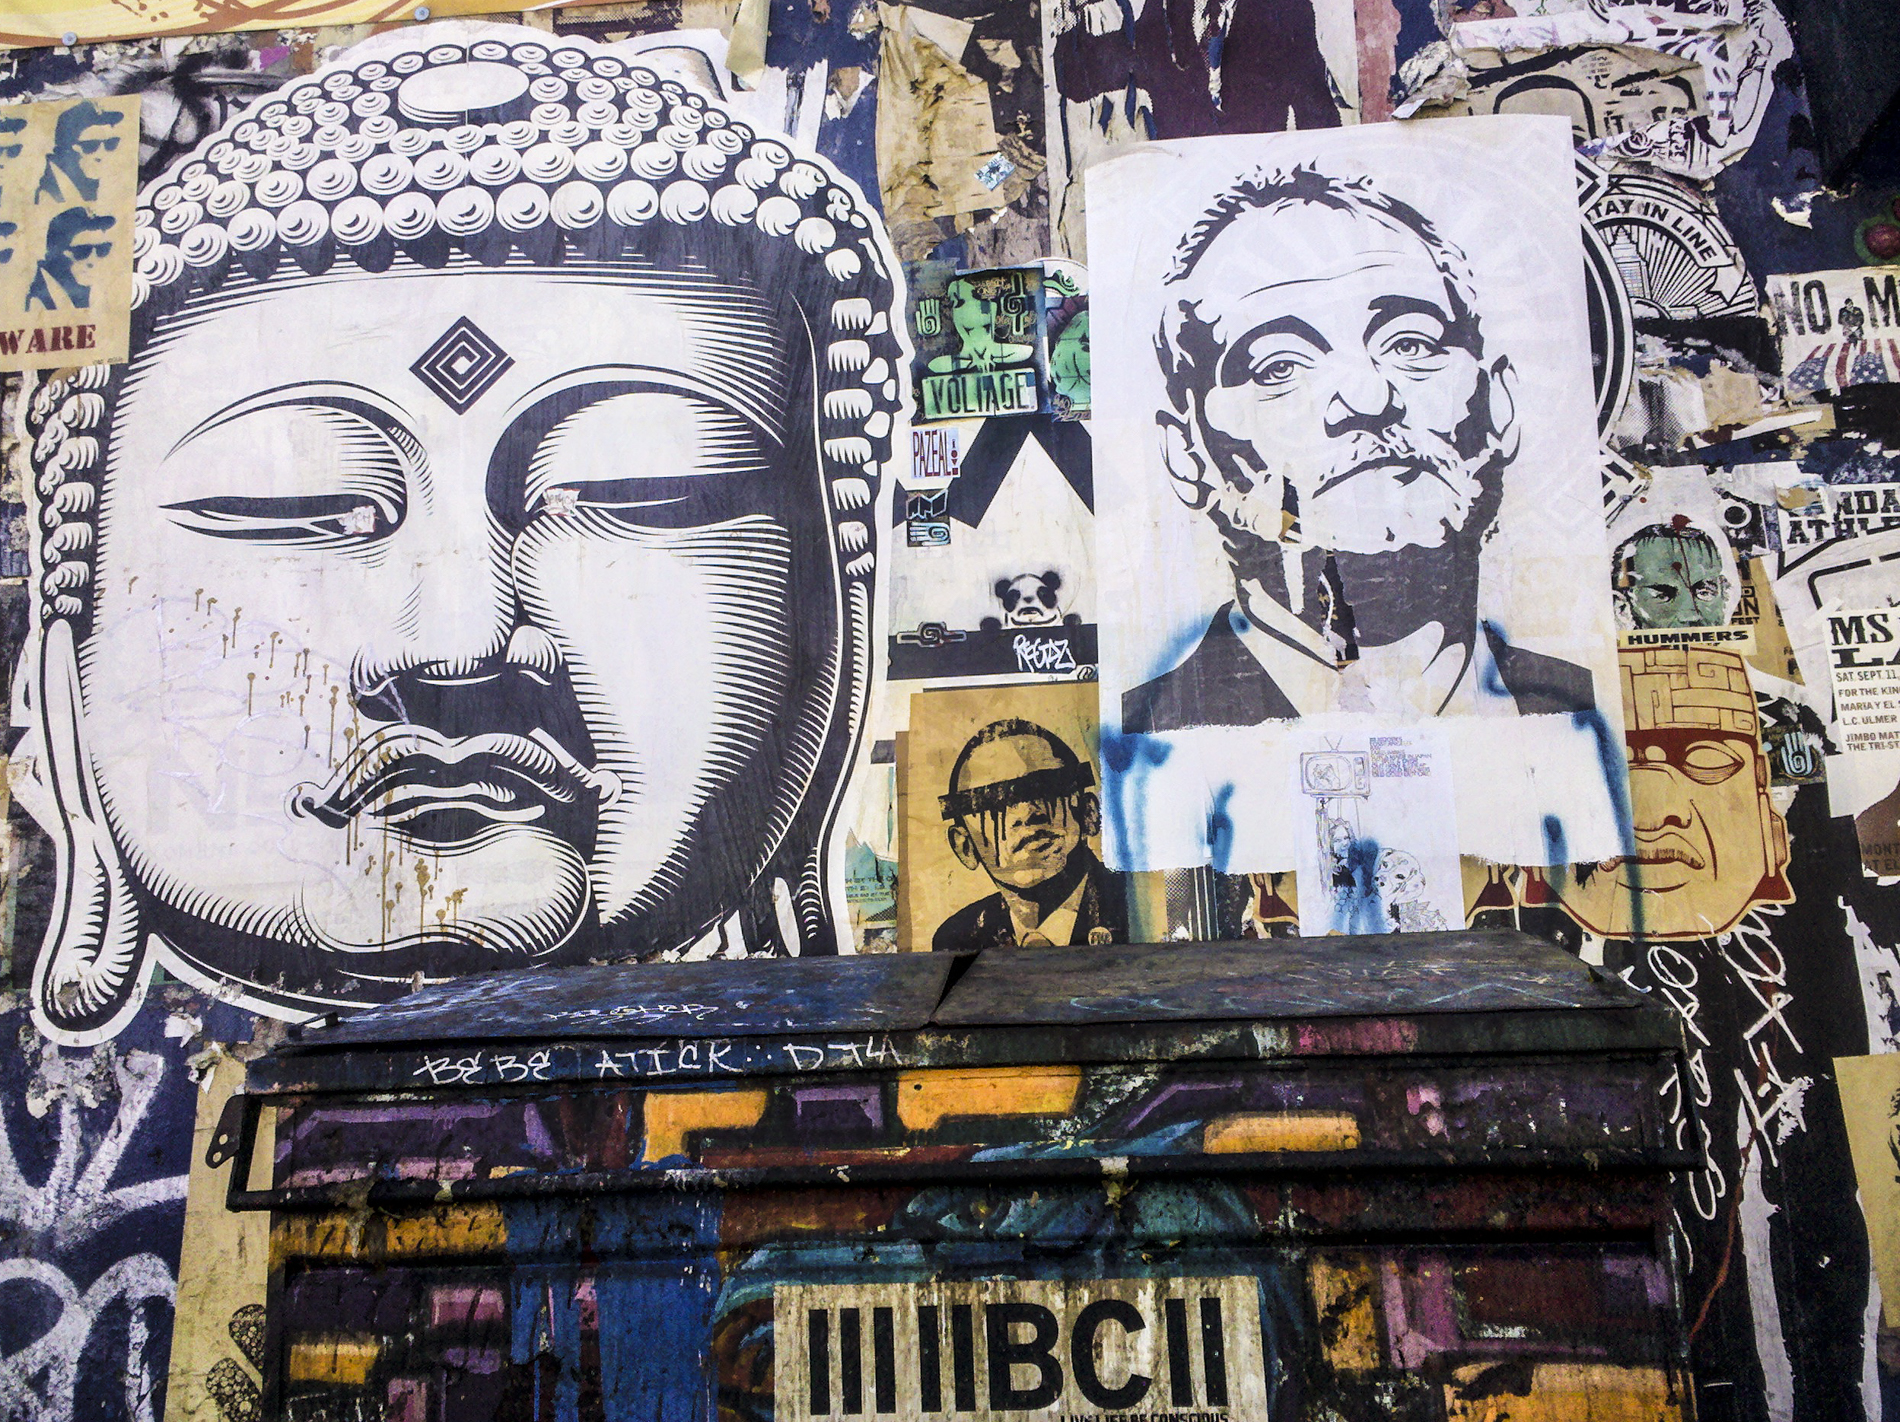 Buddha Barack and Bill